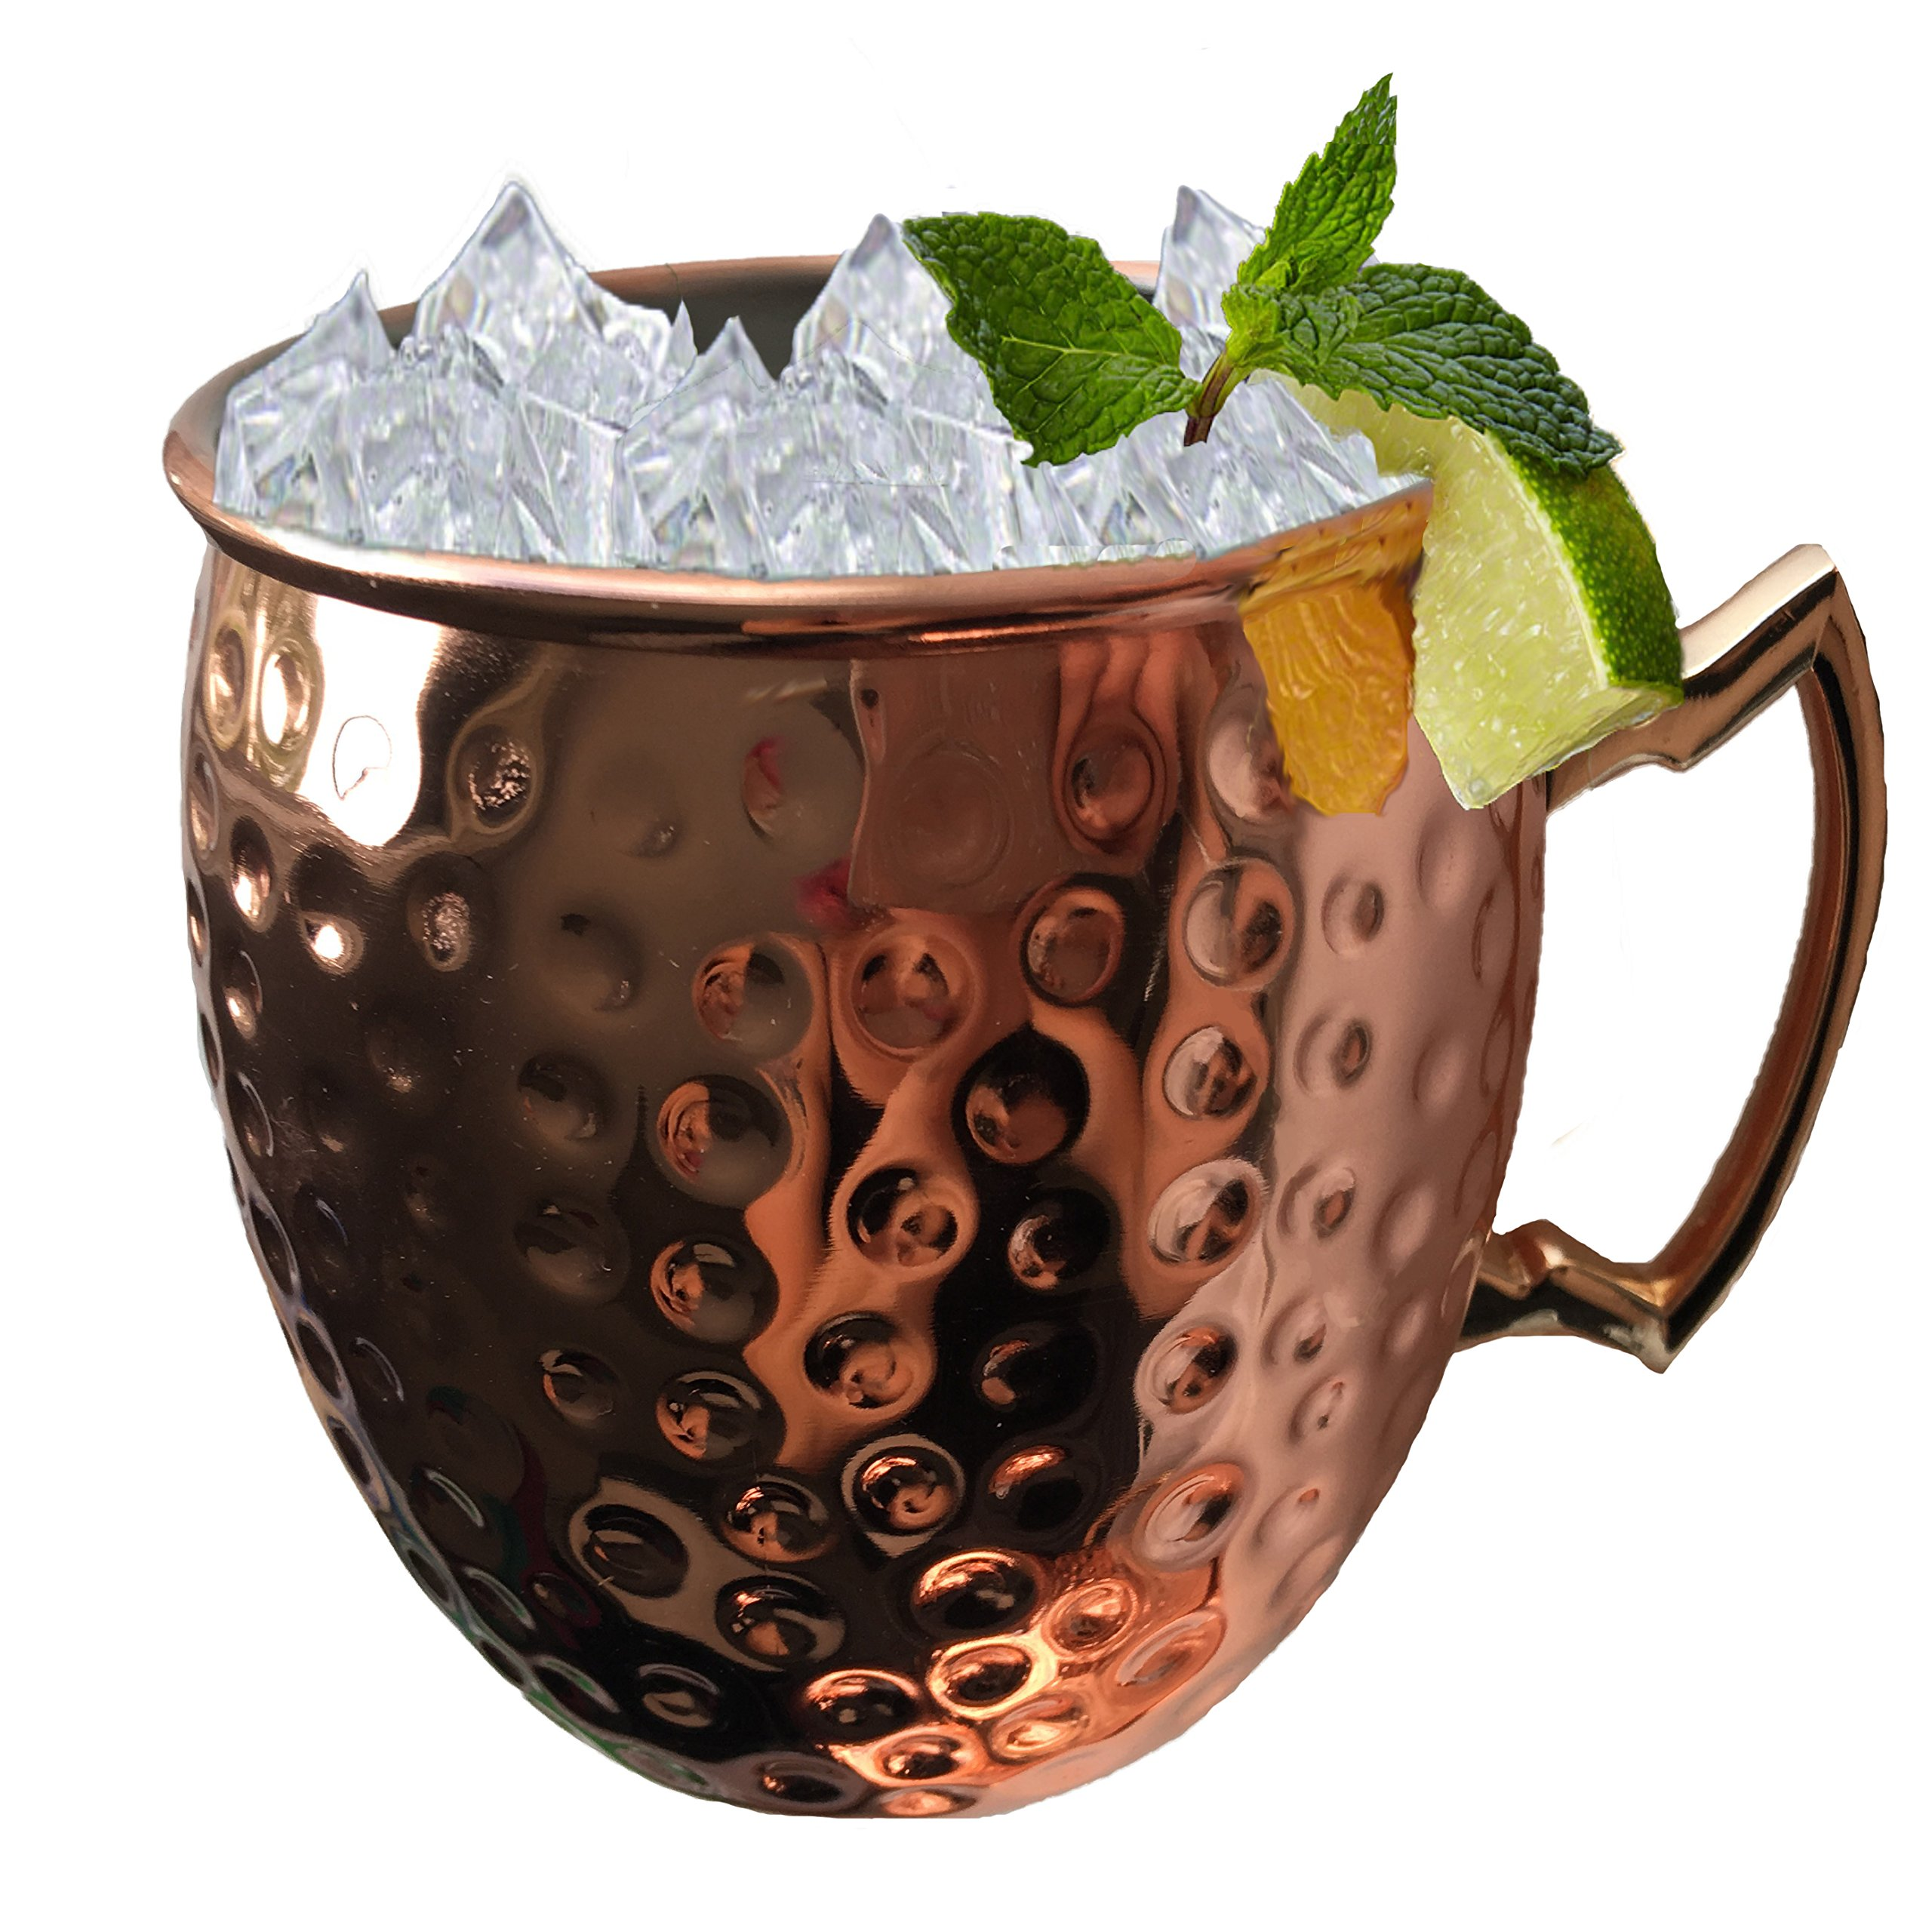 BonBon Luxury Moscow Mule Copper/Nickel Mug Cup 4 pack New (Copper/Nickel)